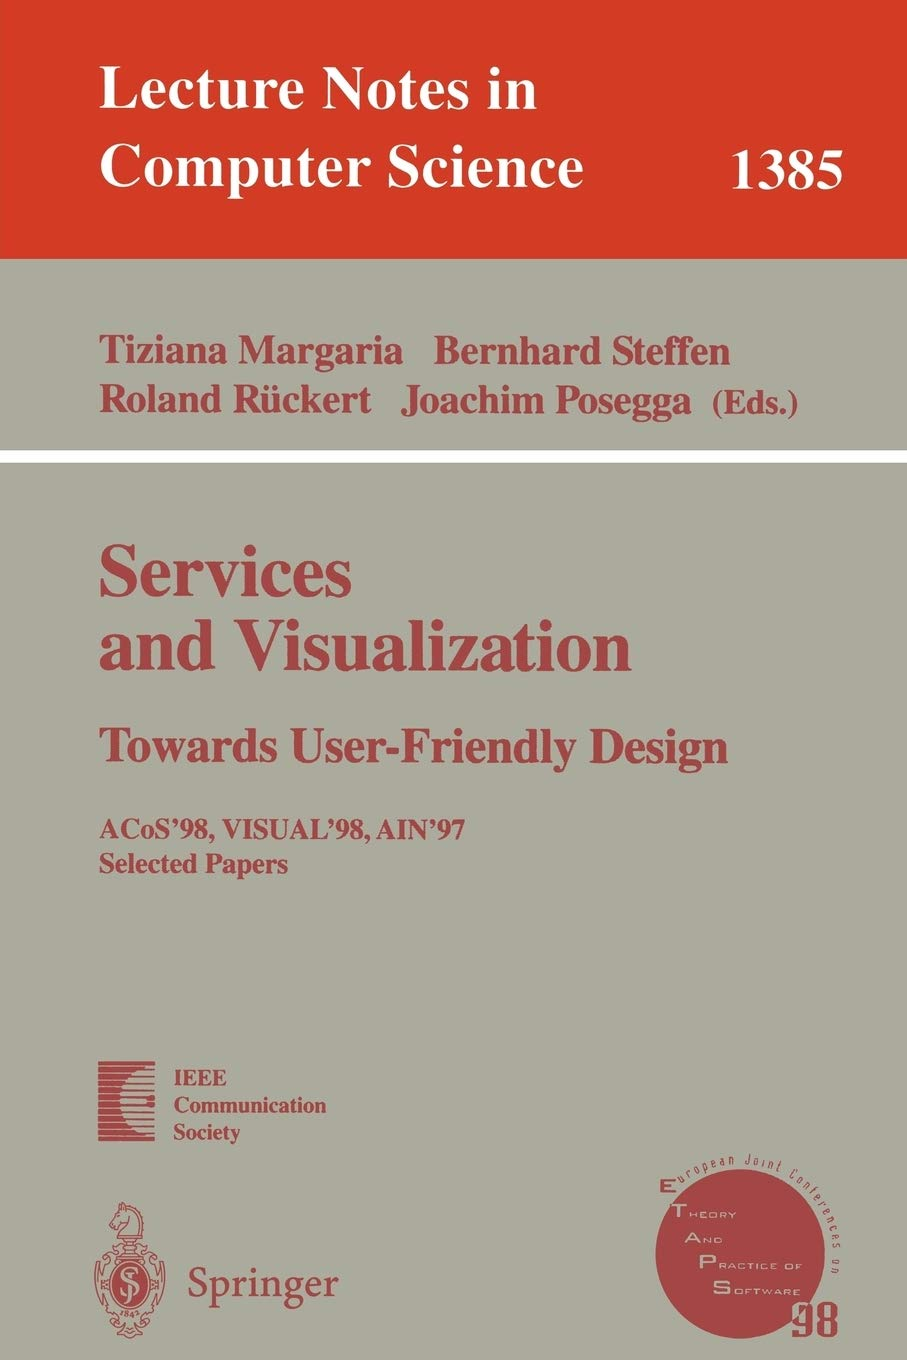 Services and Visualization: Towards User-Friendly Design: ACos'98, VISUAL'98, AIN'97, Selected Papers (Lecture Notes in Computer Science (1385))